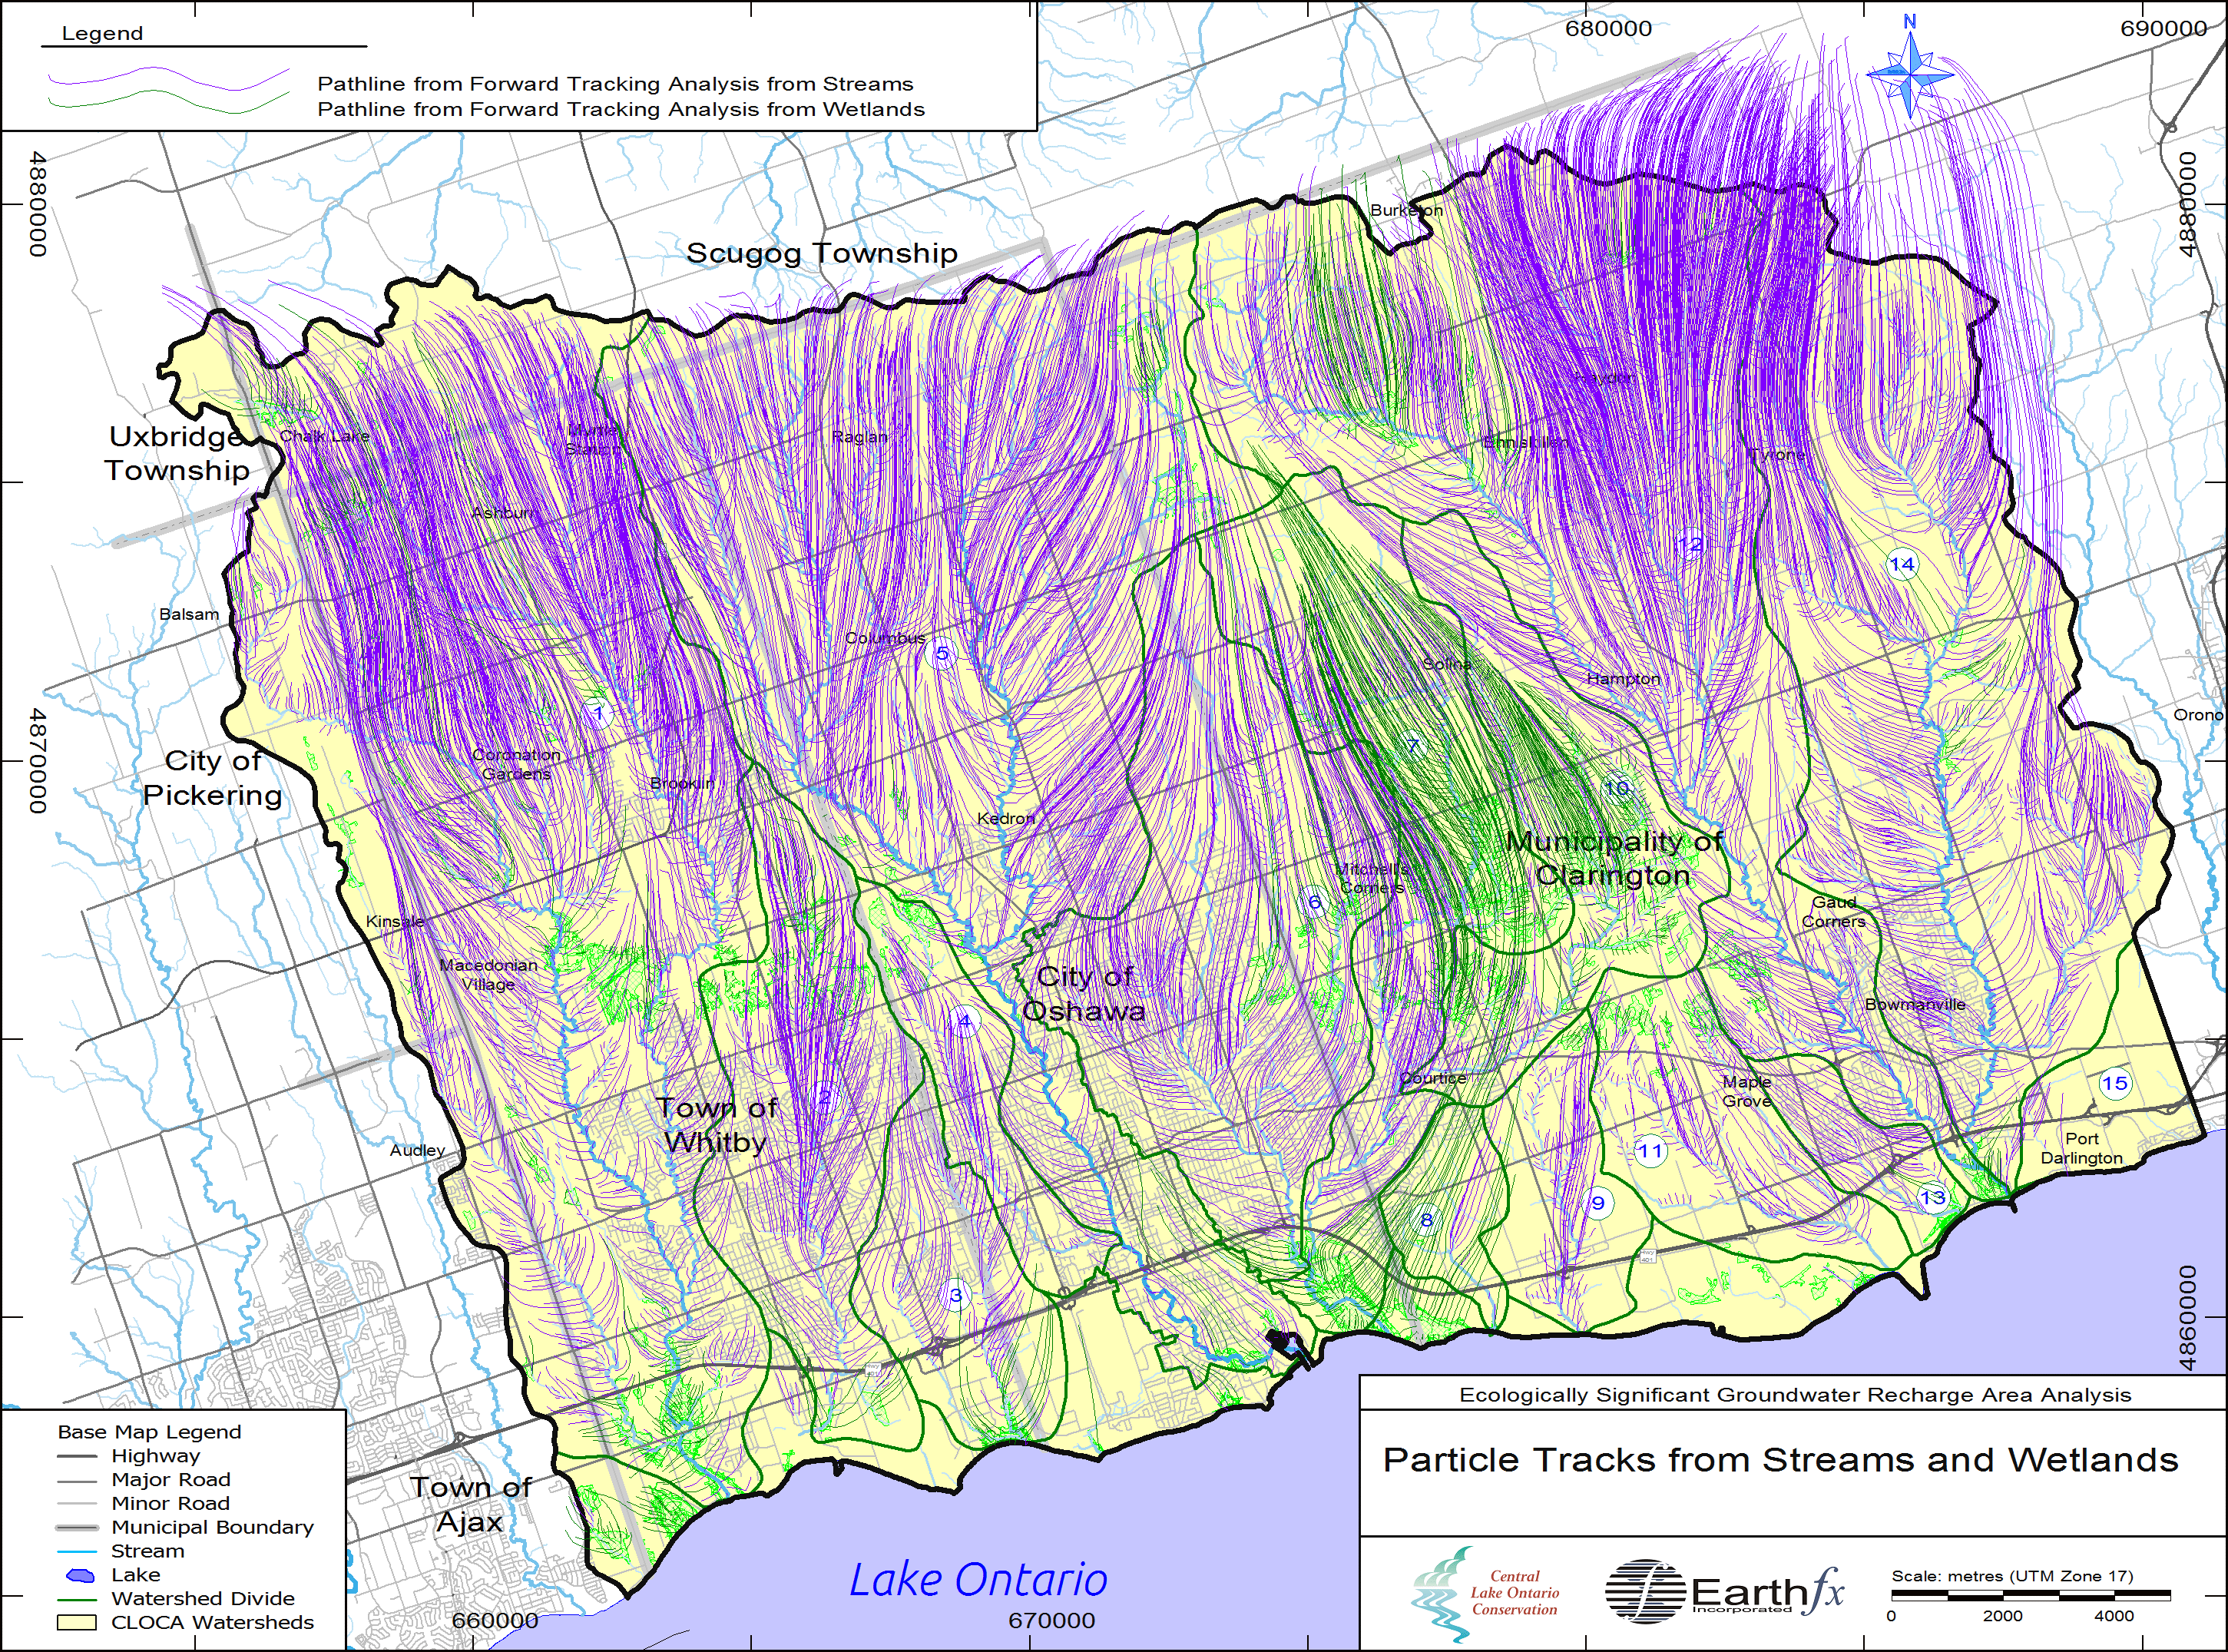 Ecologically Significant Groundwater Recharge Assessment in the Central Lake Ontario Watersheds